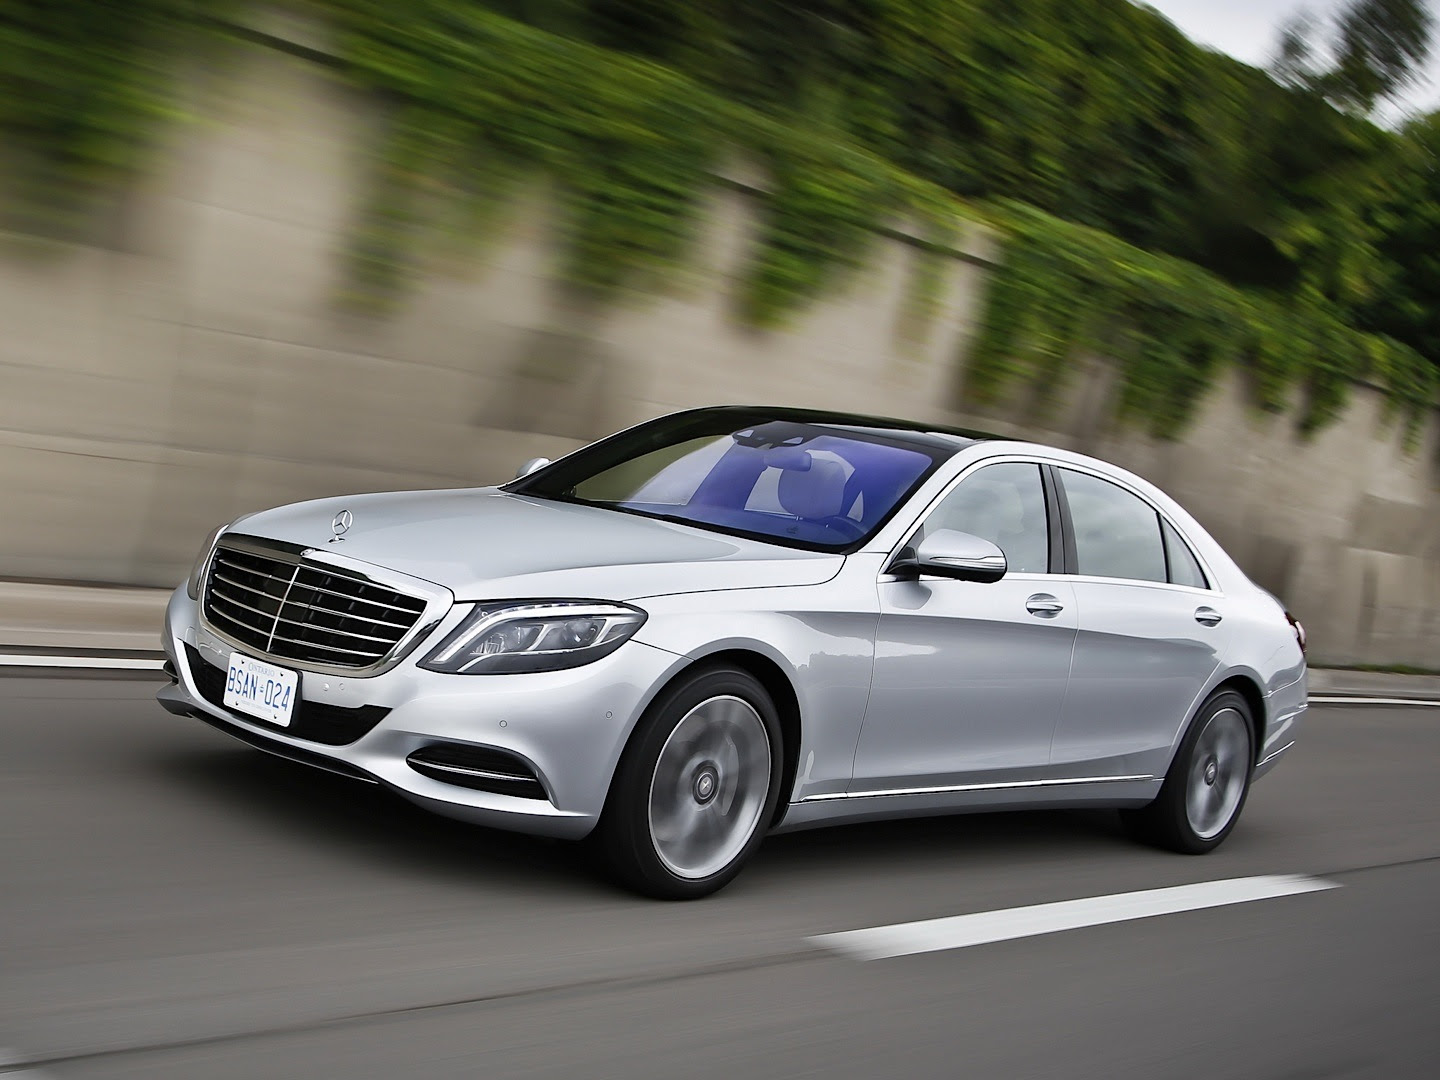 Mercedes-Benz S350 BlueTec Review by CAR - autoevolution